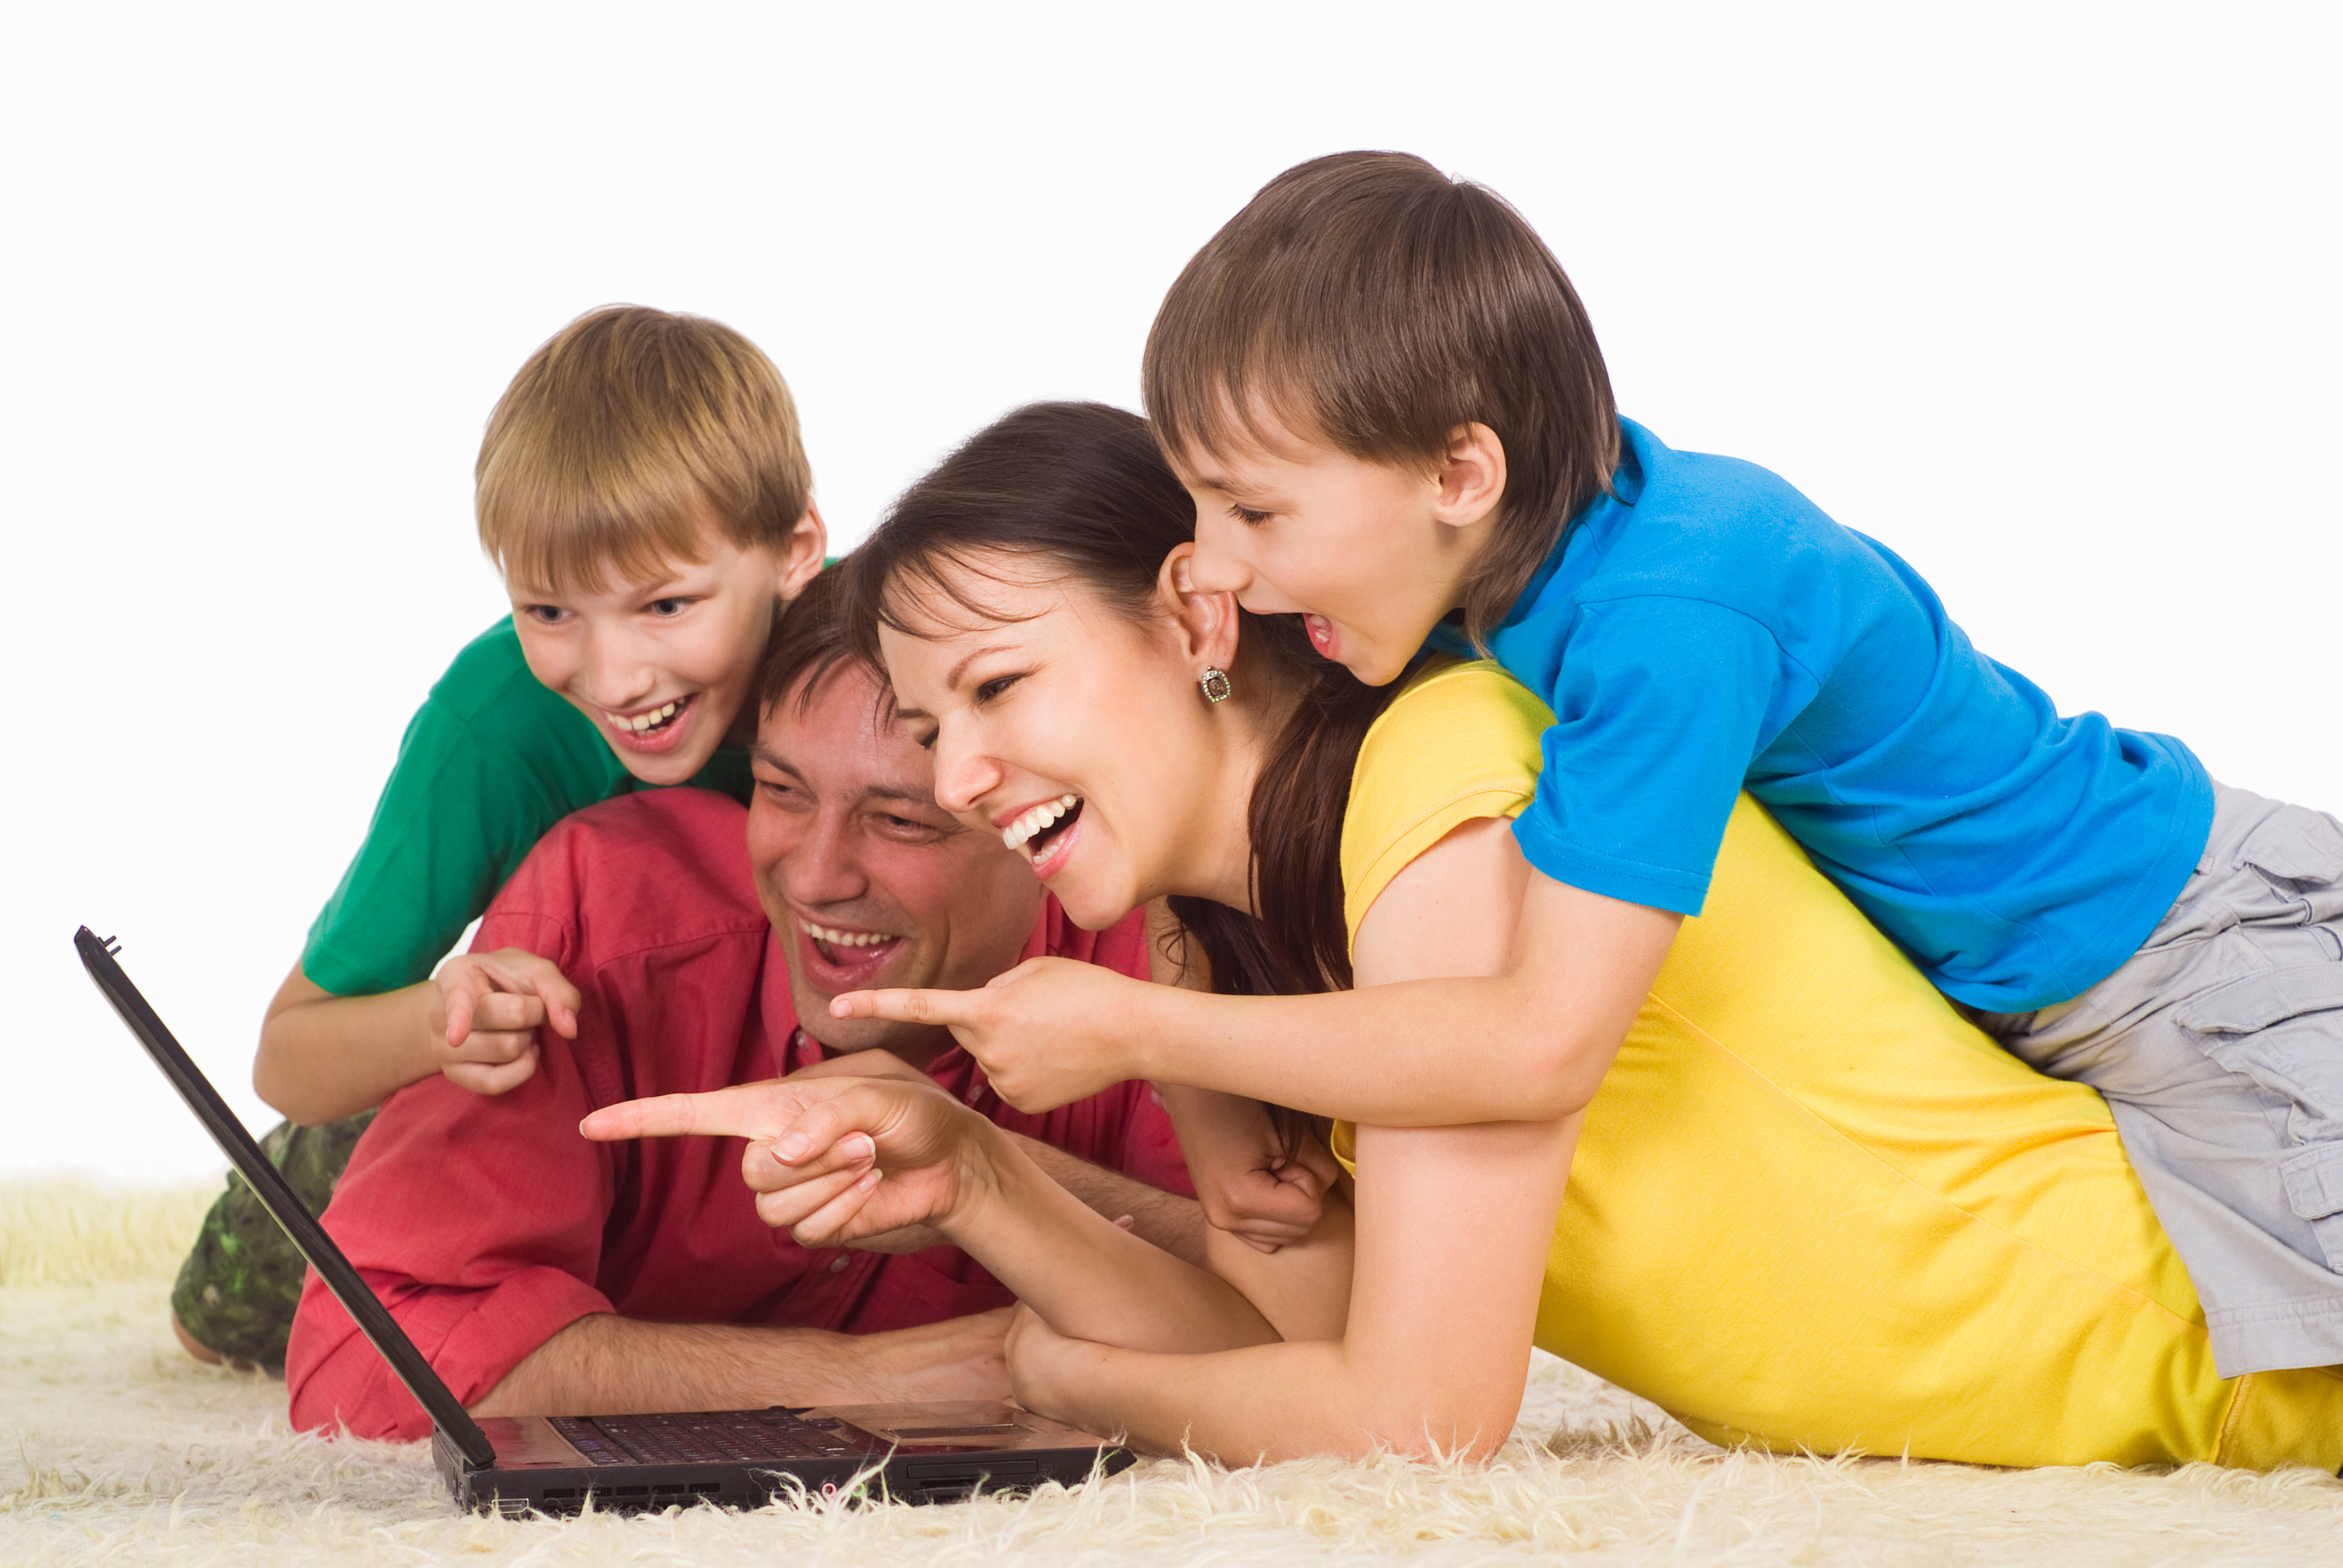 cute family lying on a carpet with laptop